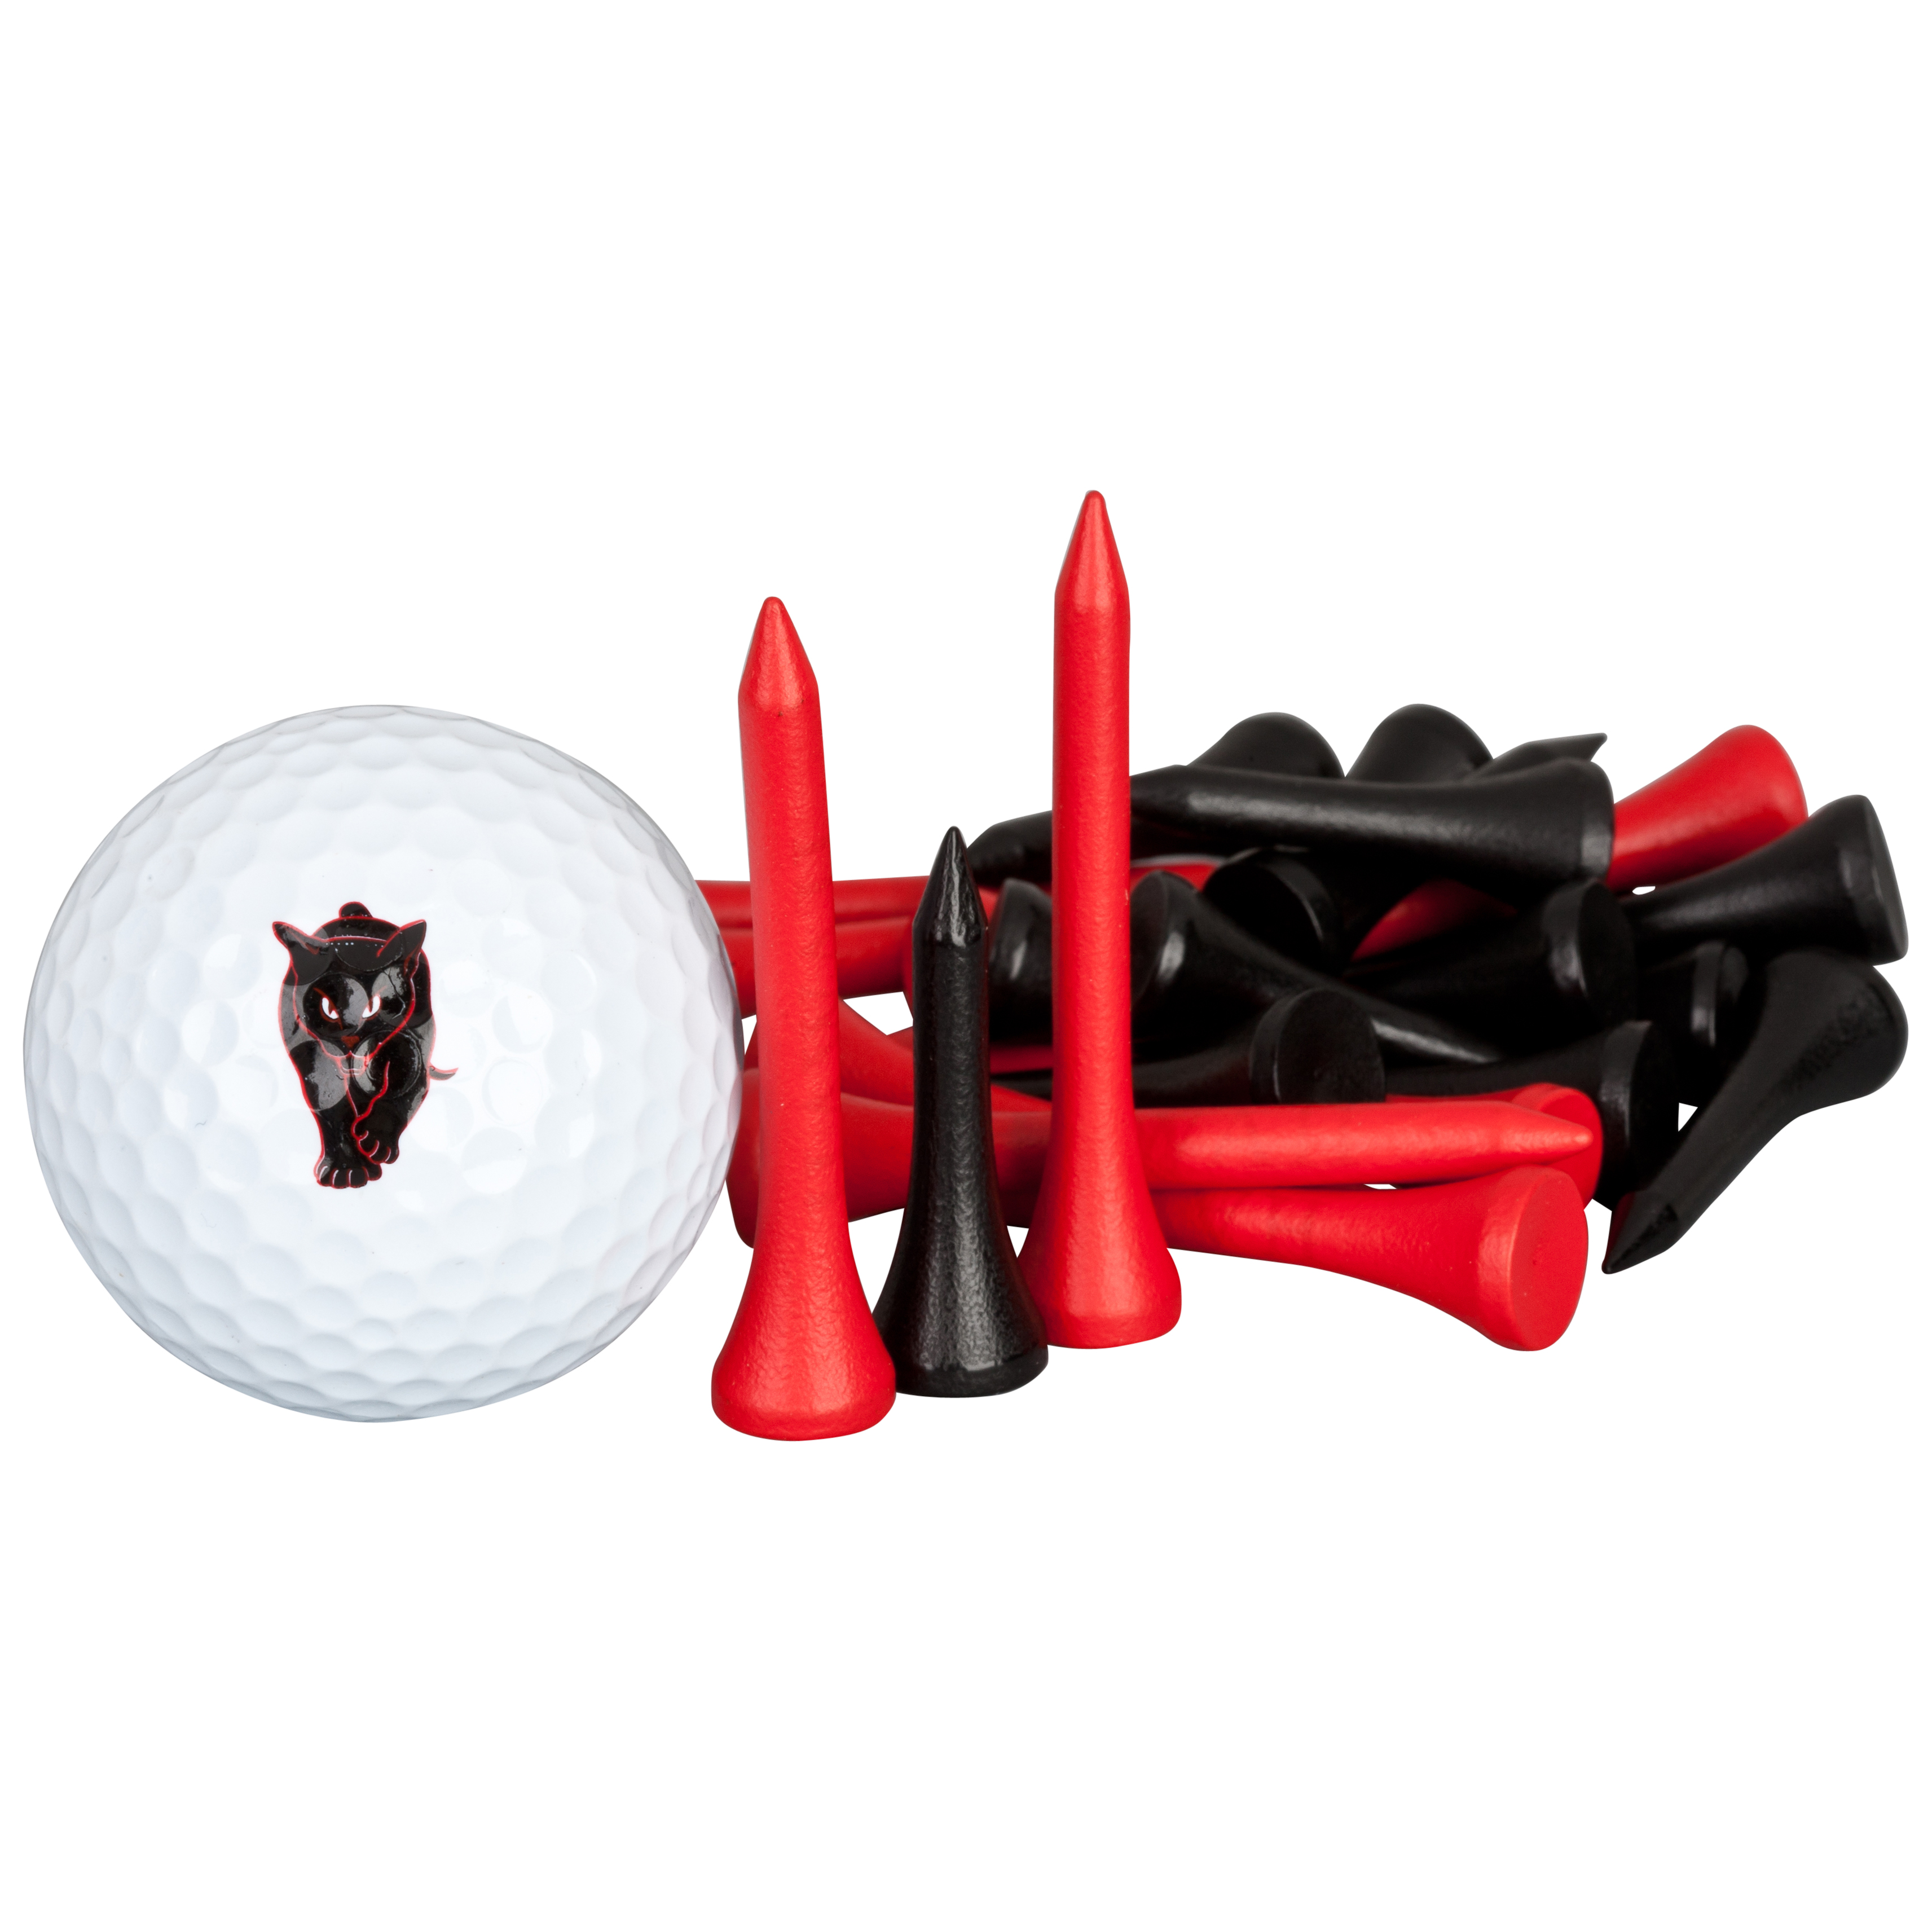 Sunderland Executive Golf Gift Ball and Tee Set